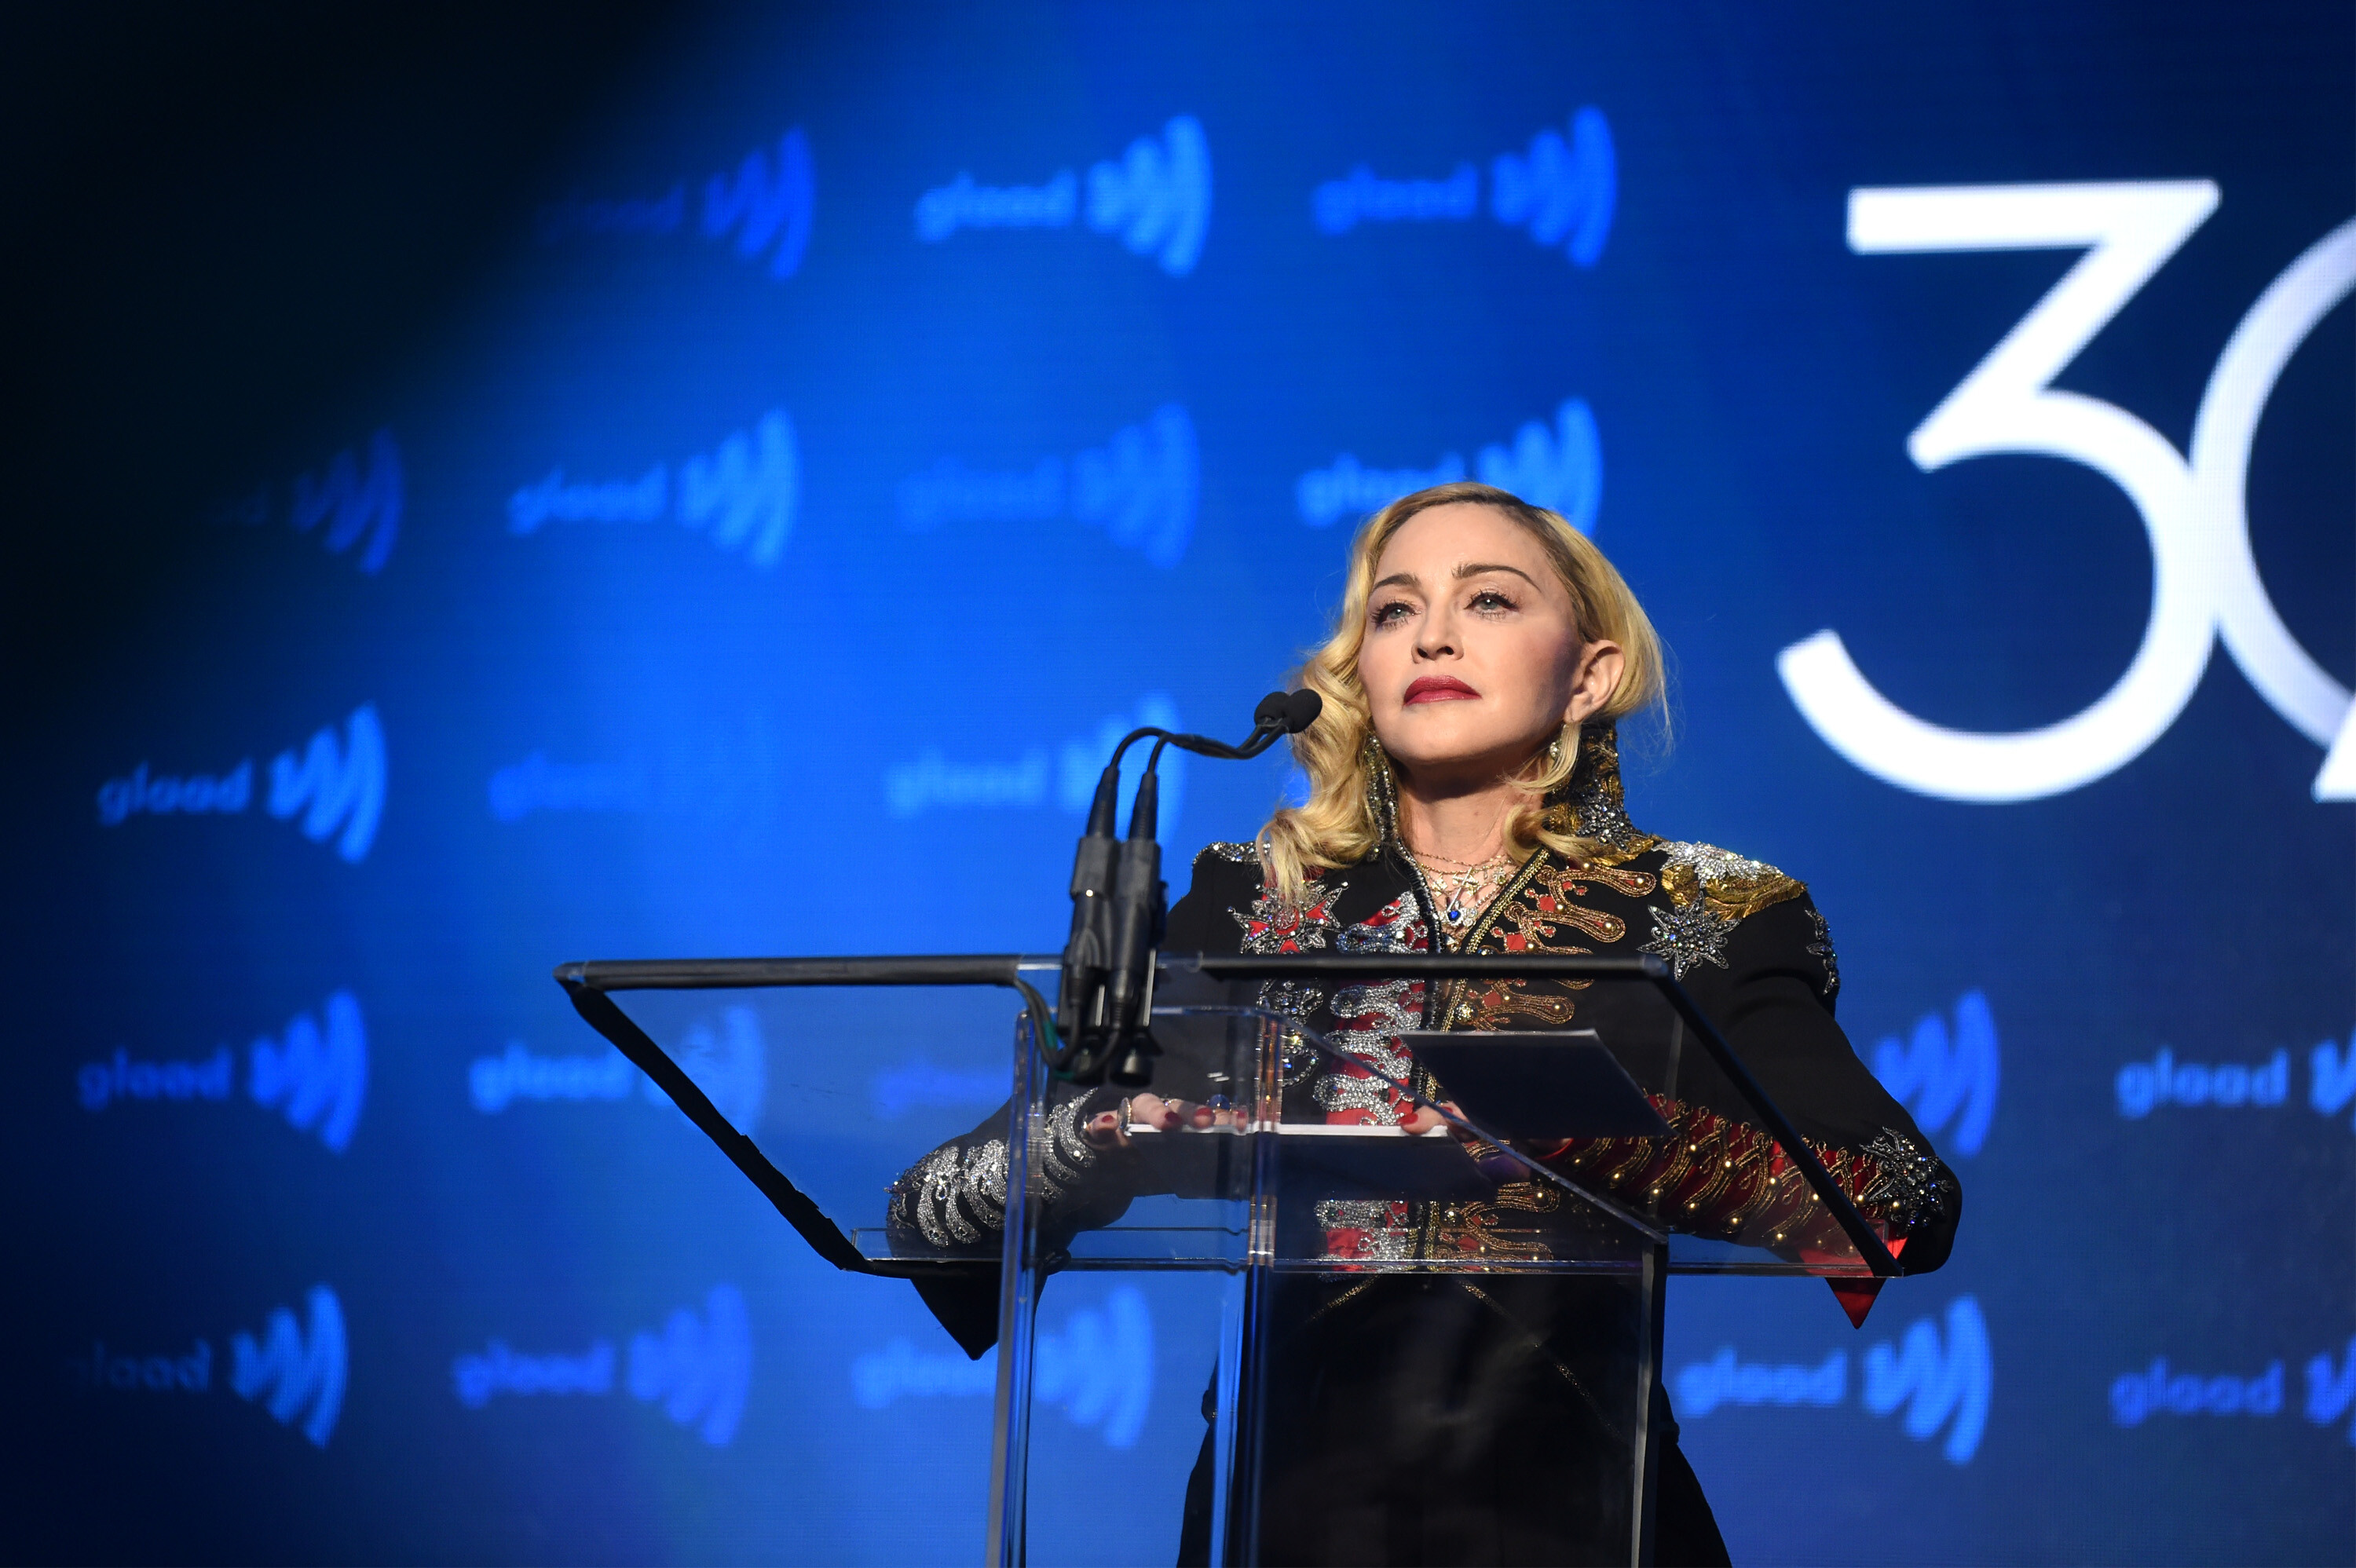 Madonna says Britney Spears' conservatorship is 'a violation to human rights'